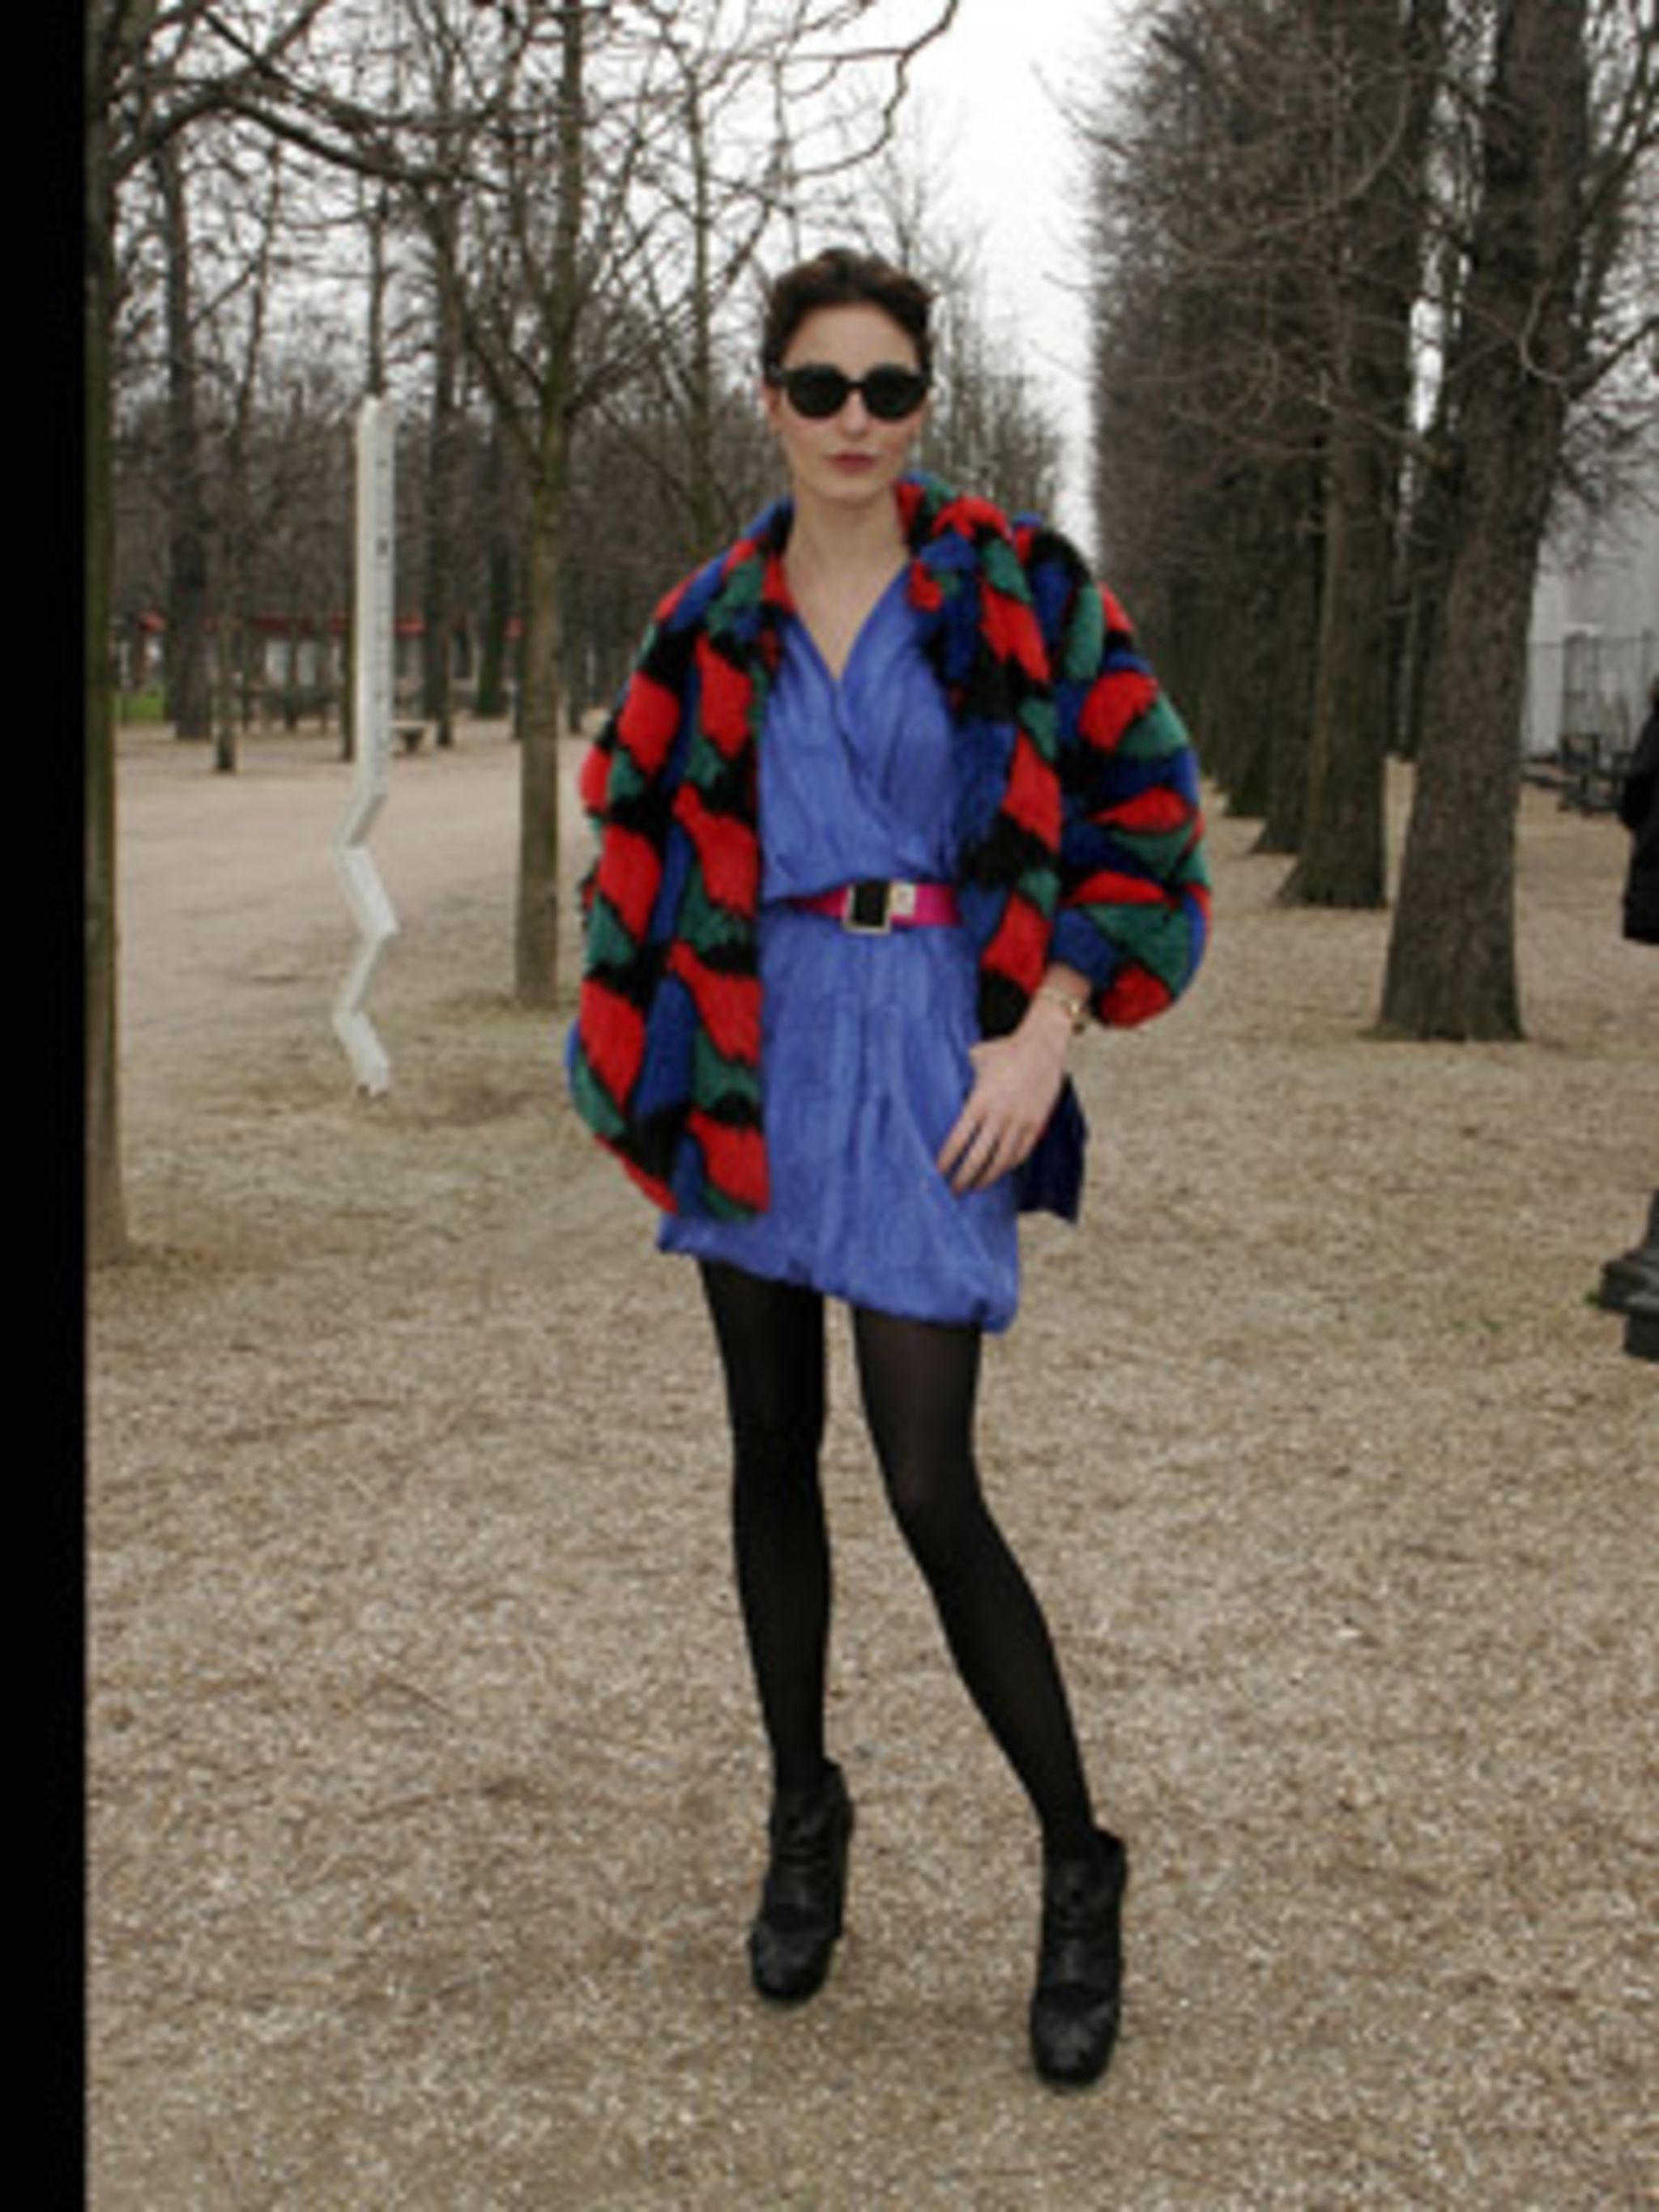 <p>This bold outfit is daring but works because the proportions are just right - she has teamed an oversize jacket with a mini dress to balance out the look.</p>